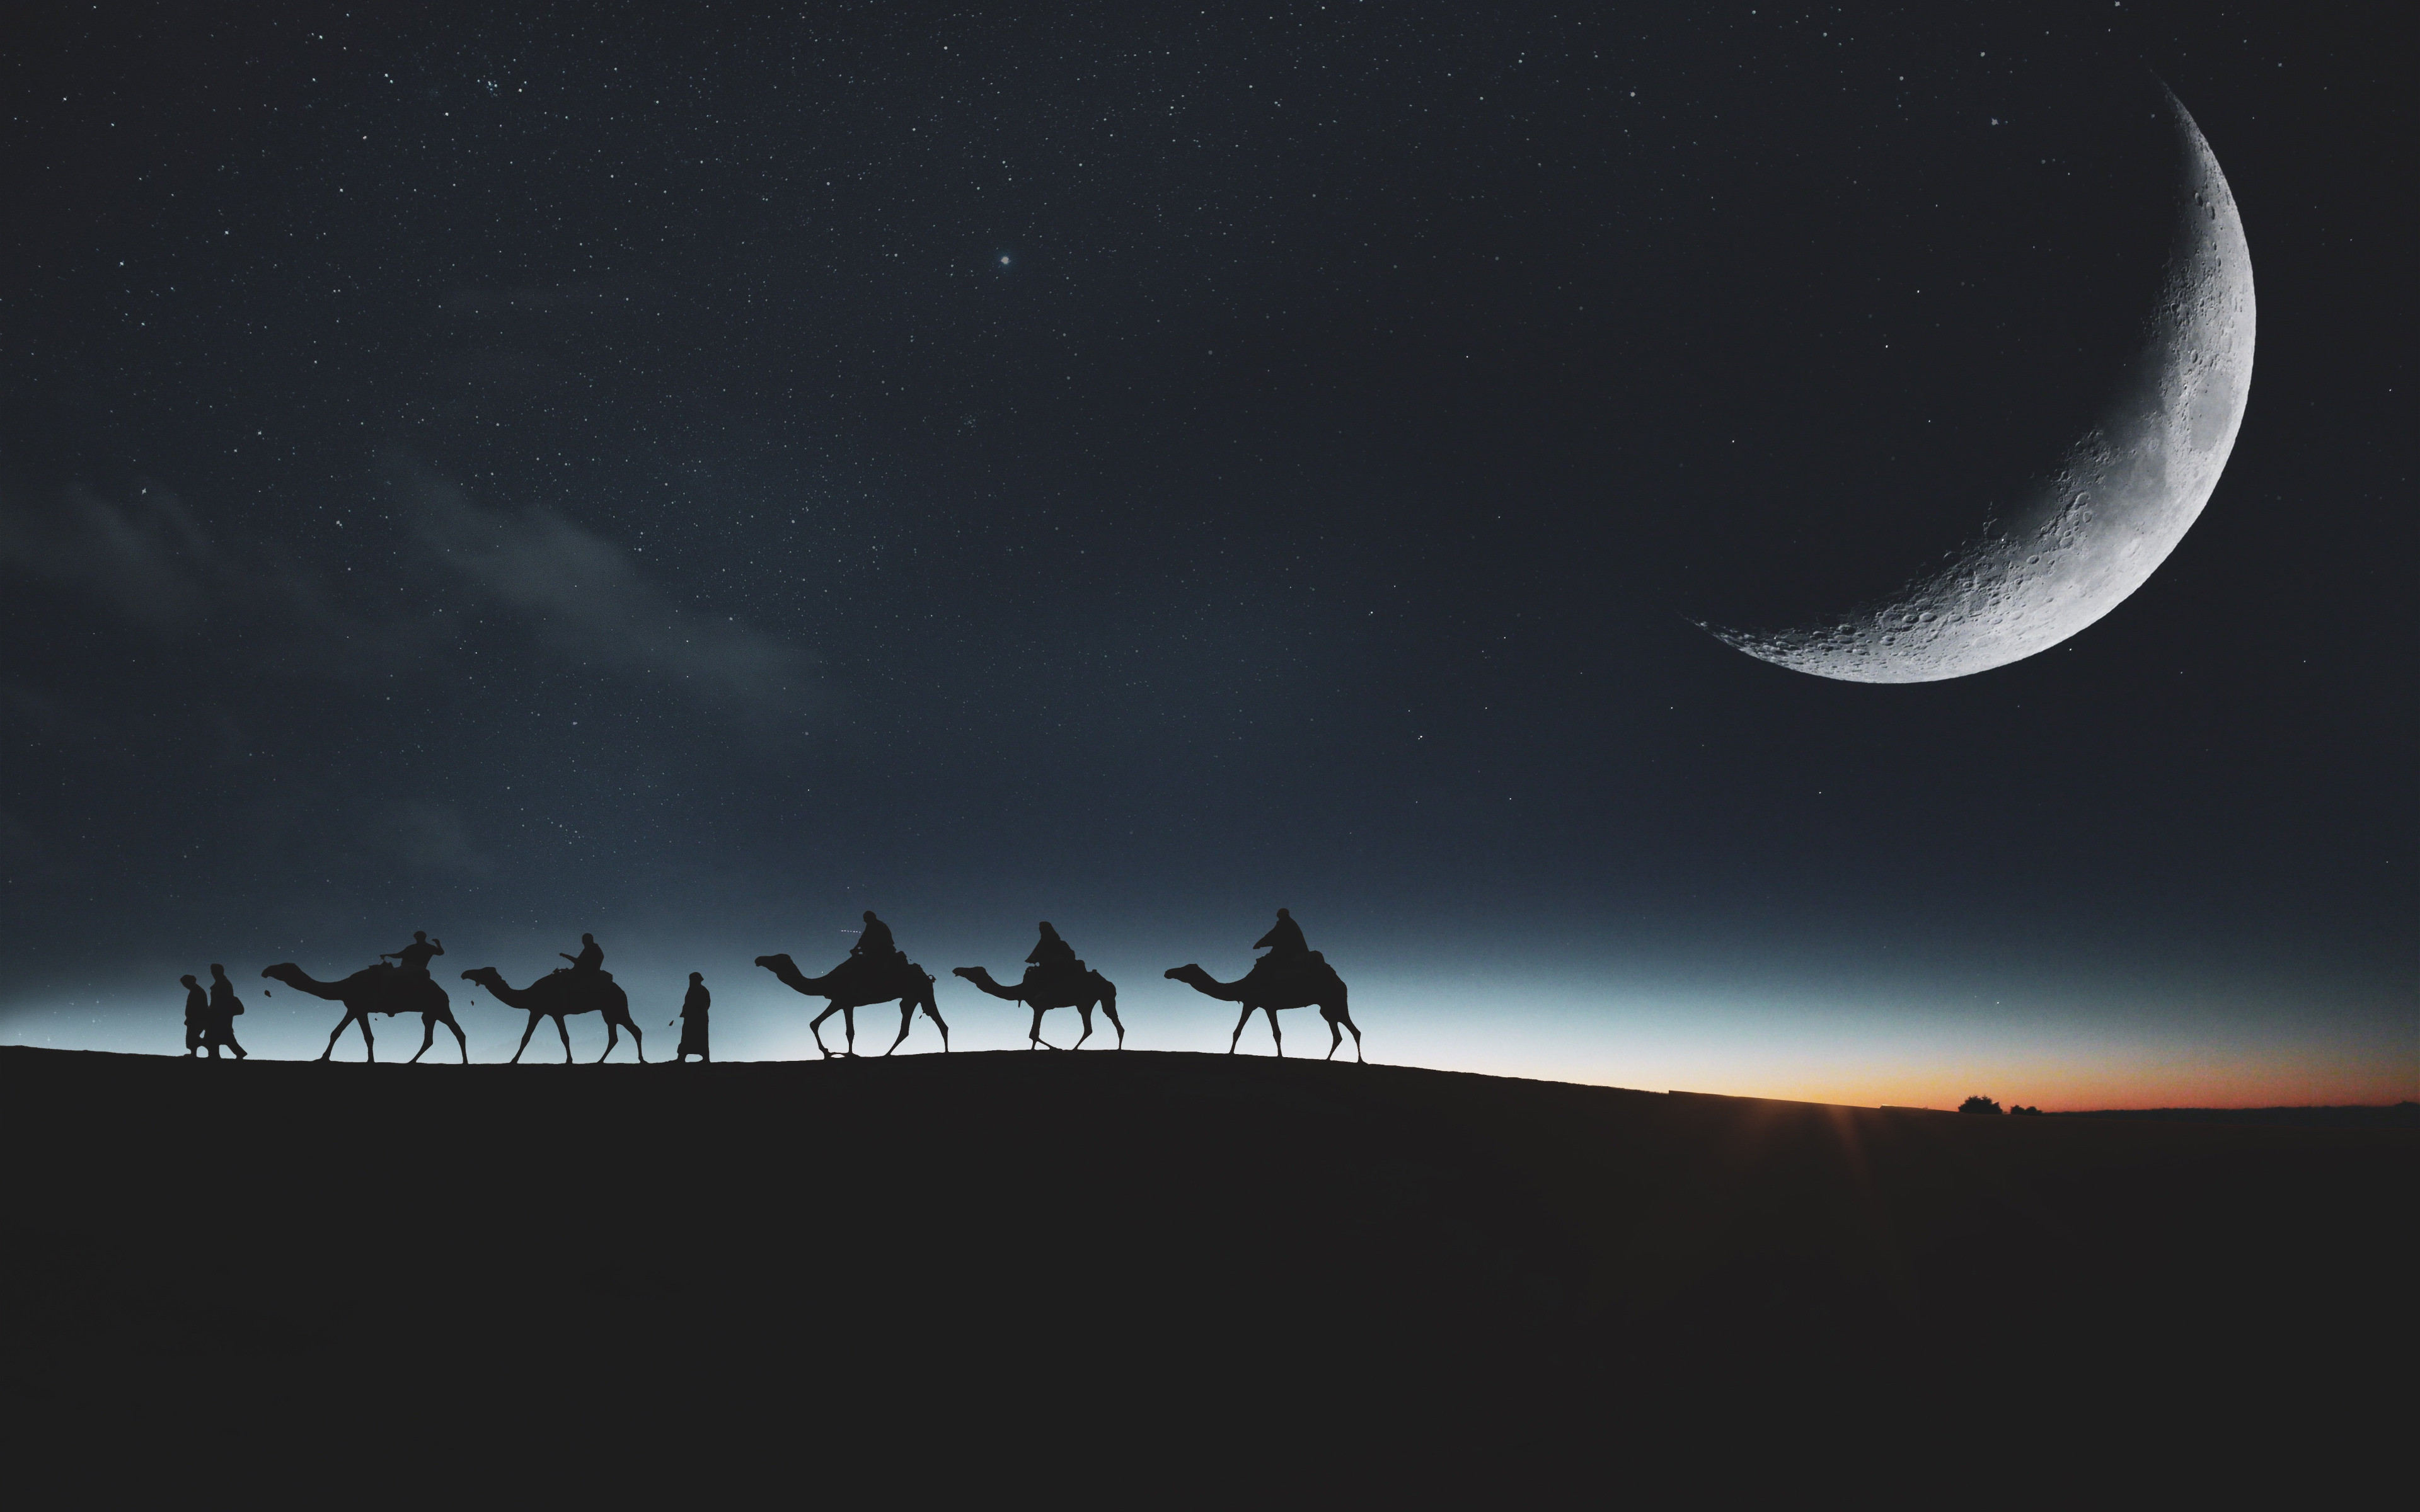 Traveling through desert on camels wallpaper 3840x2400